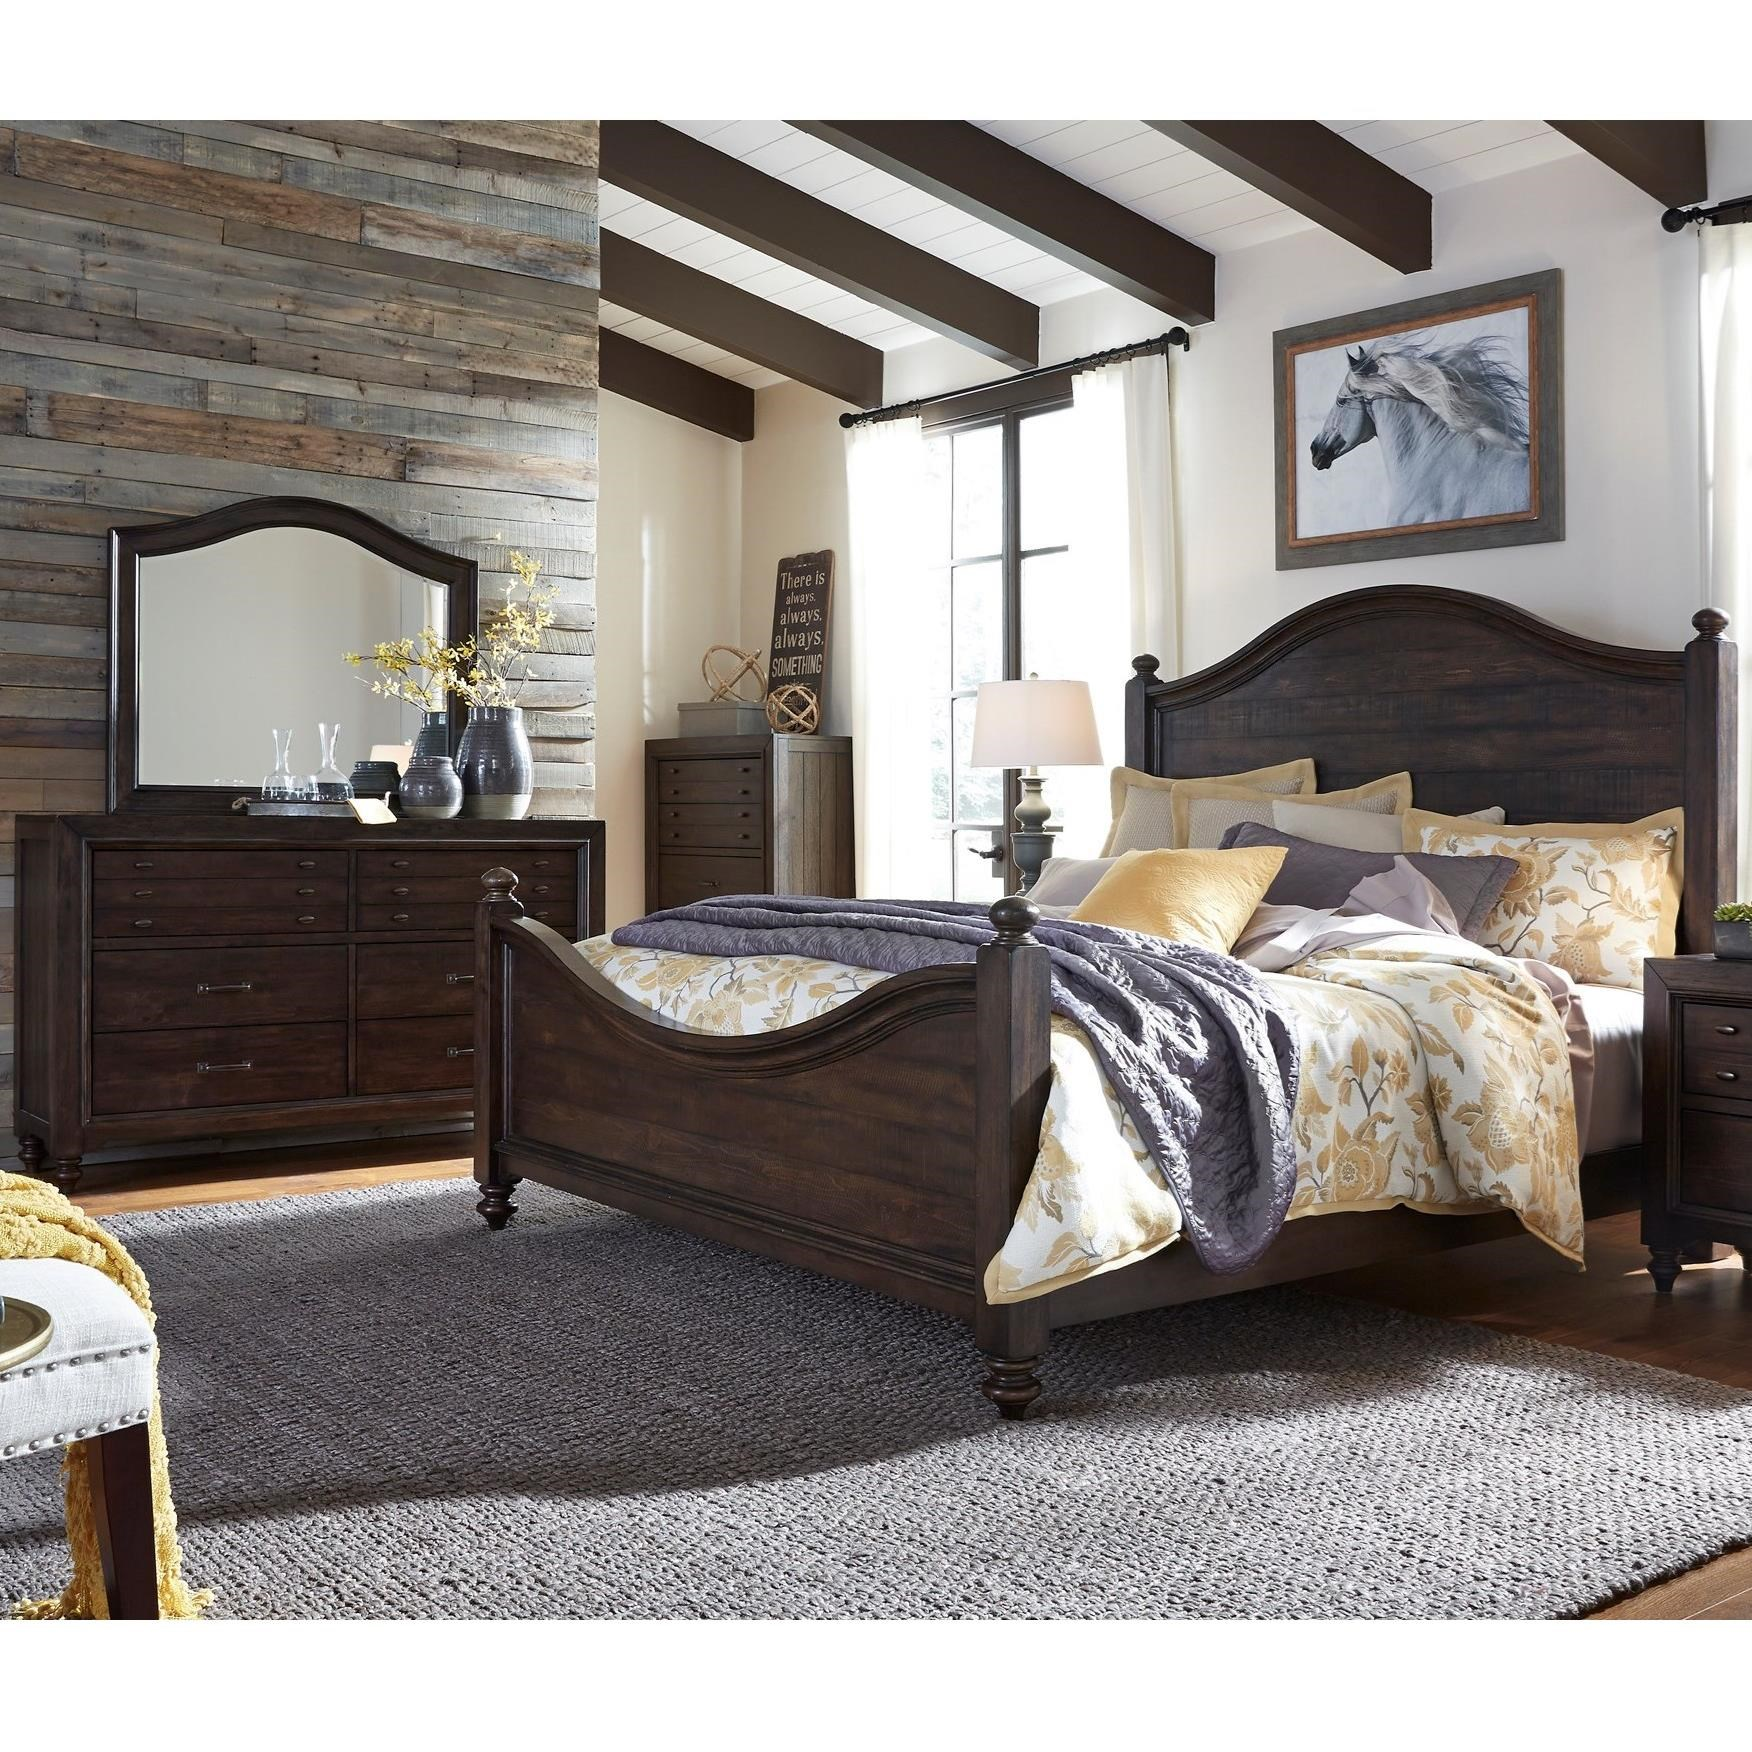 Catawba Hills Bedroom Queen Poster Bed Bedroom Group by Liberty Furniture at Northeast Factory Direct